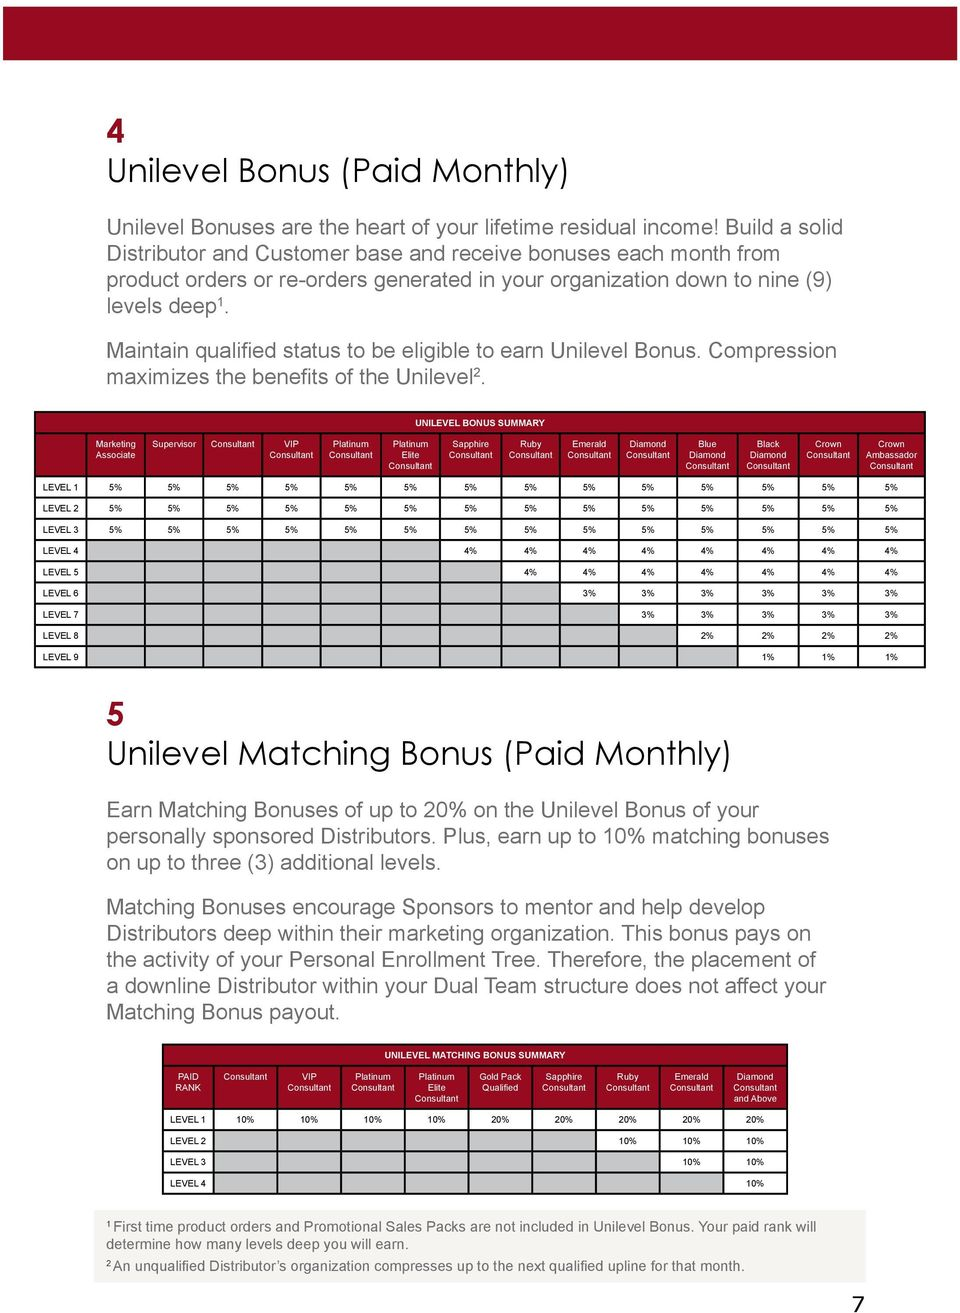 Maintain qualified status to be eligible to earn Unilevel Bonus. Compression maximizes the benefits of the Unilevel 2.